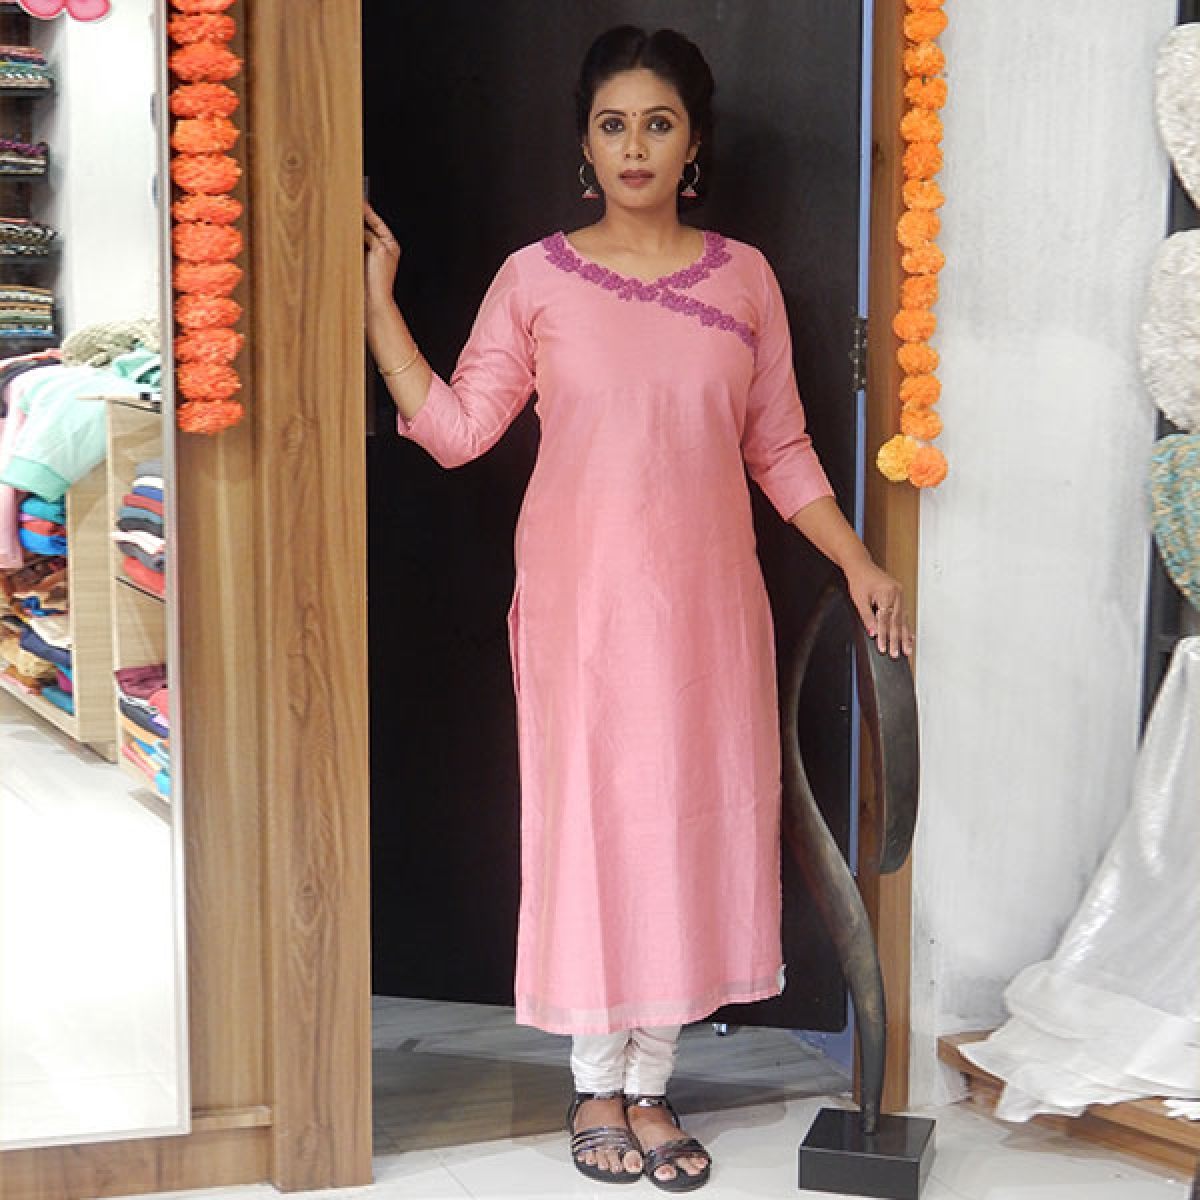 Pastel pink chanderi silk kurta with beads and french knotwork on neckline